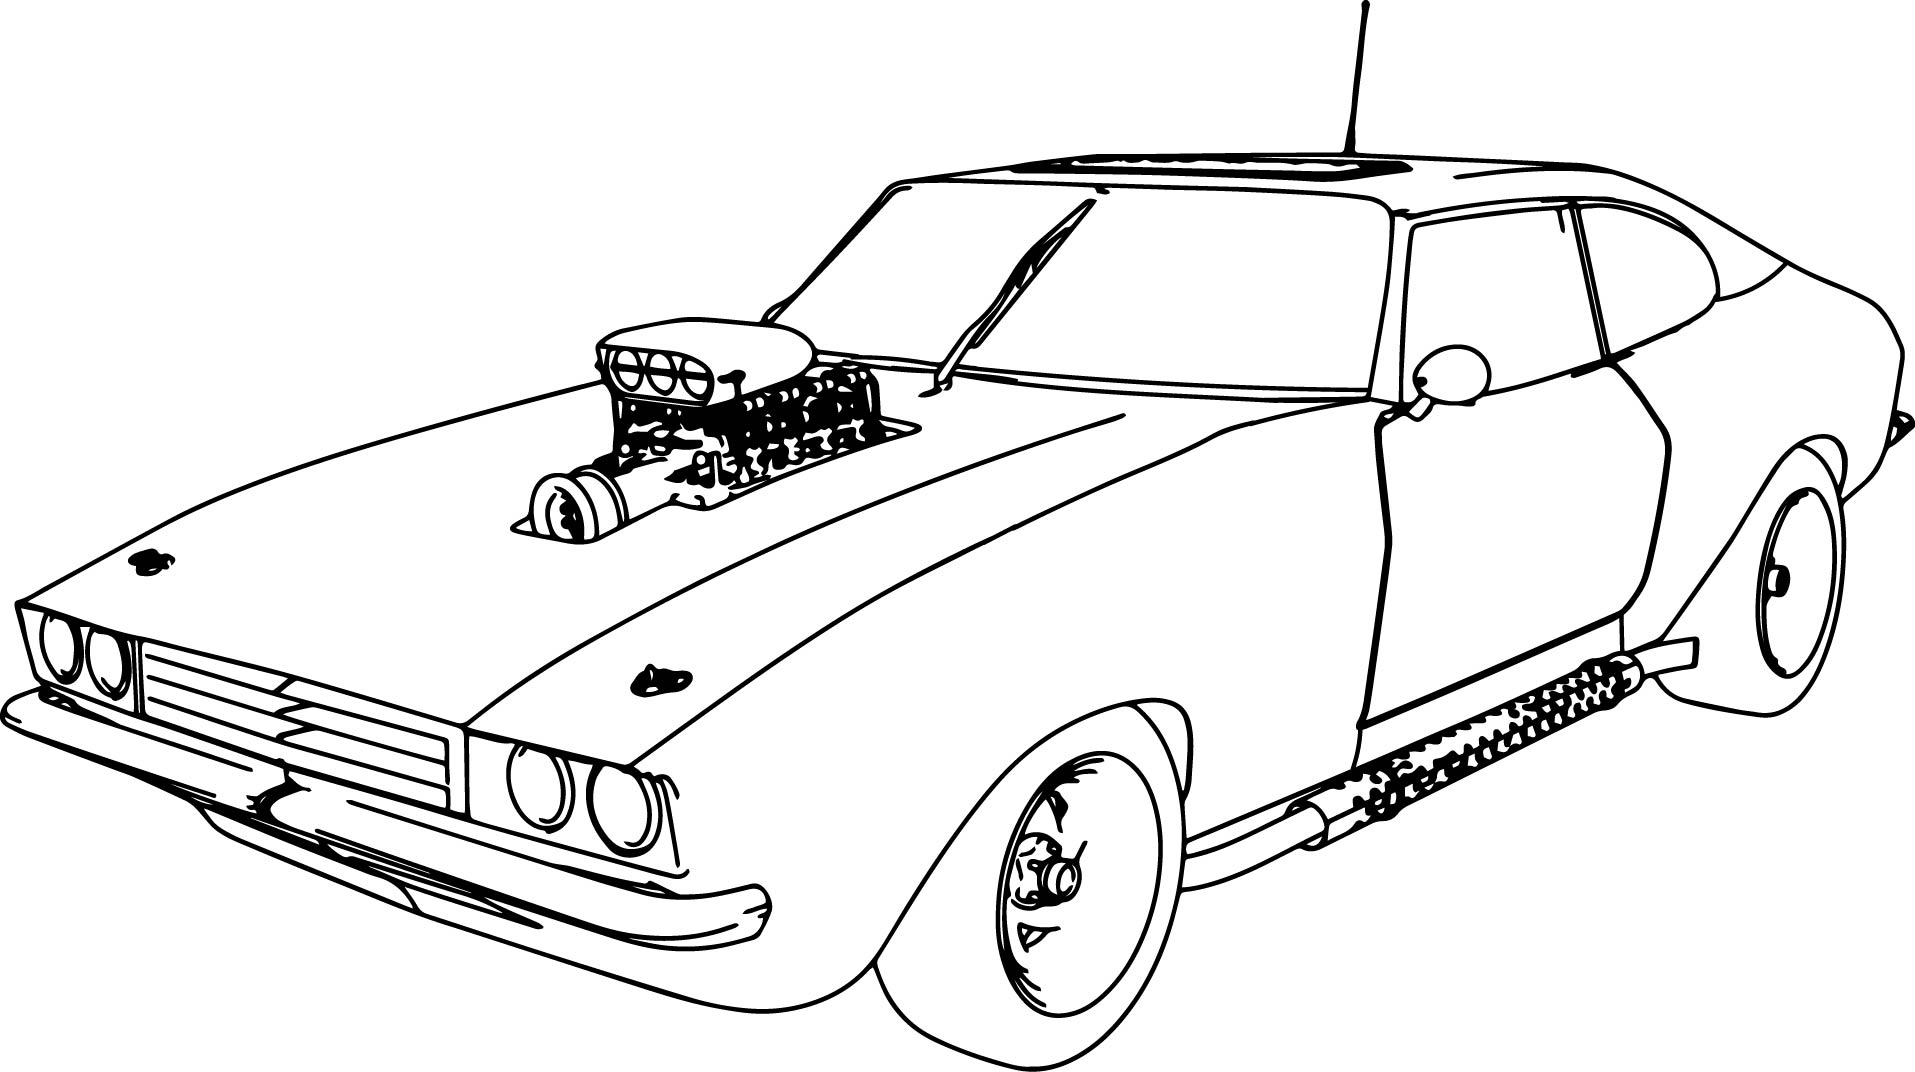 ghostbusters car coloring pages ghostbusters coloring pages coloring pages ghostbusters coloring car ghostbusters pages